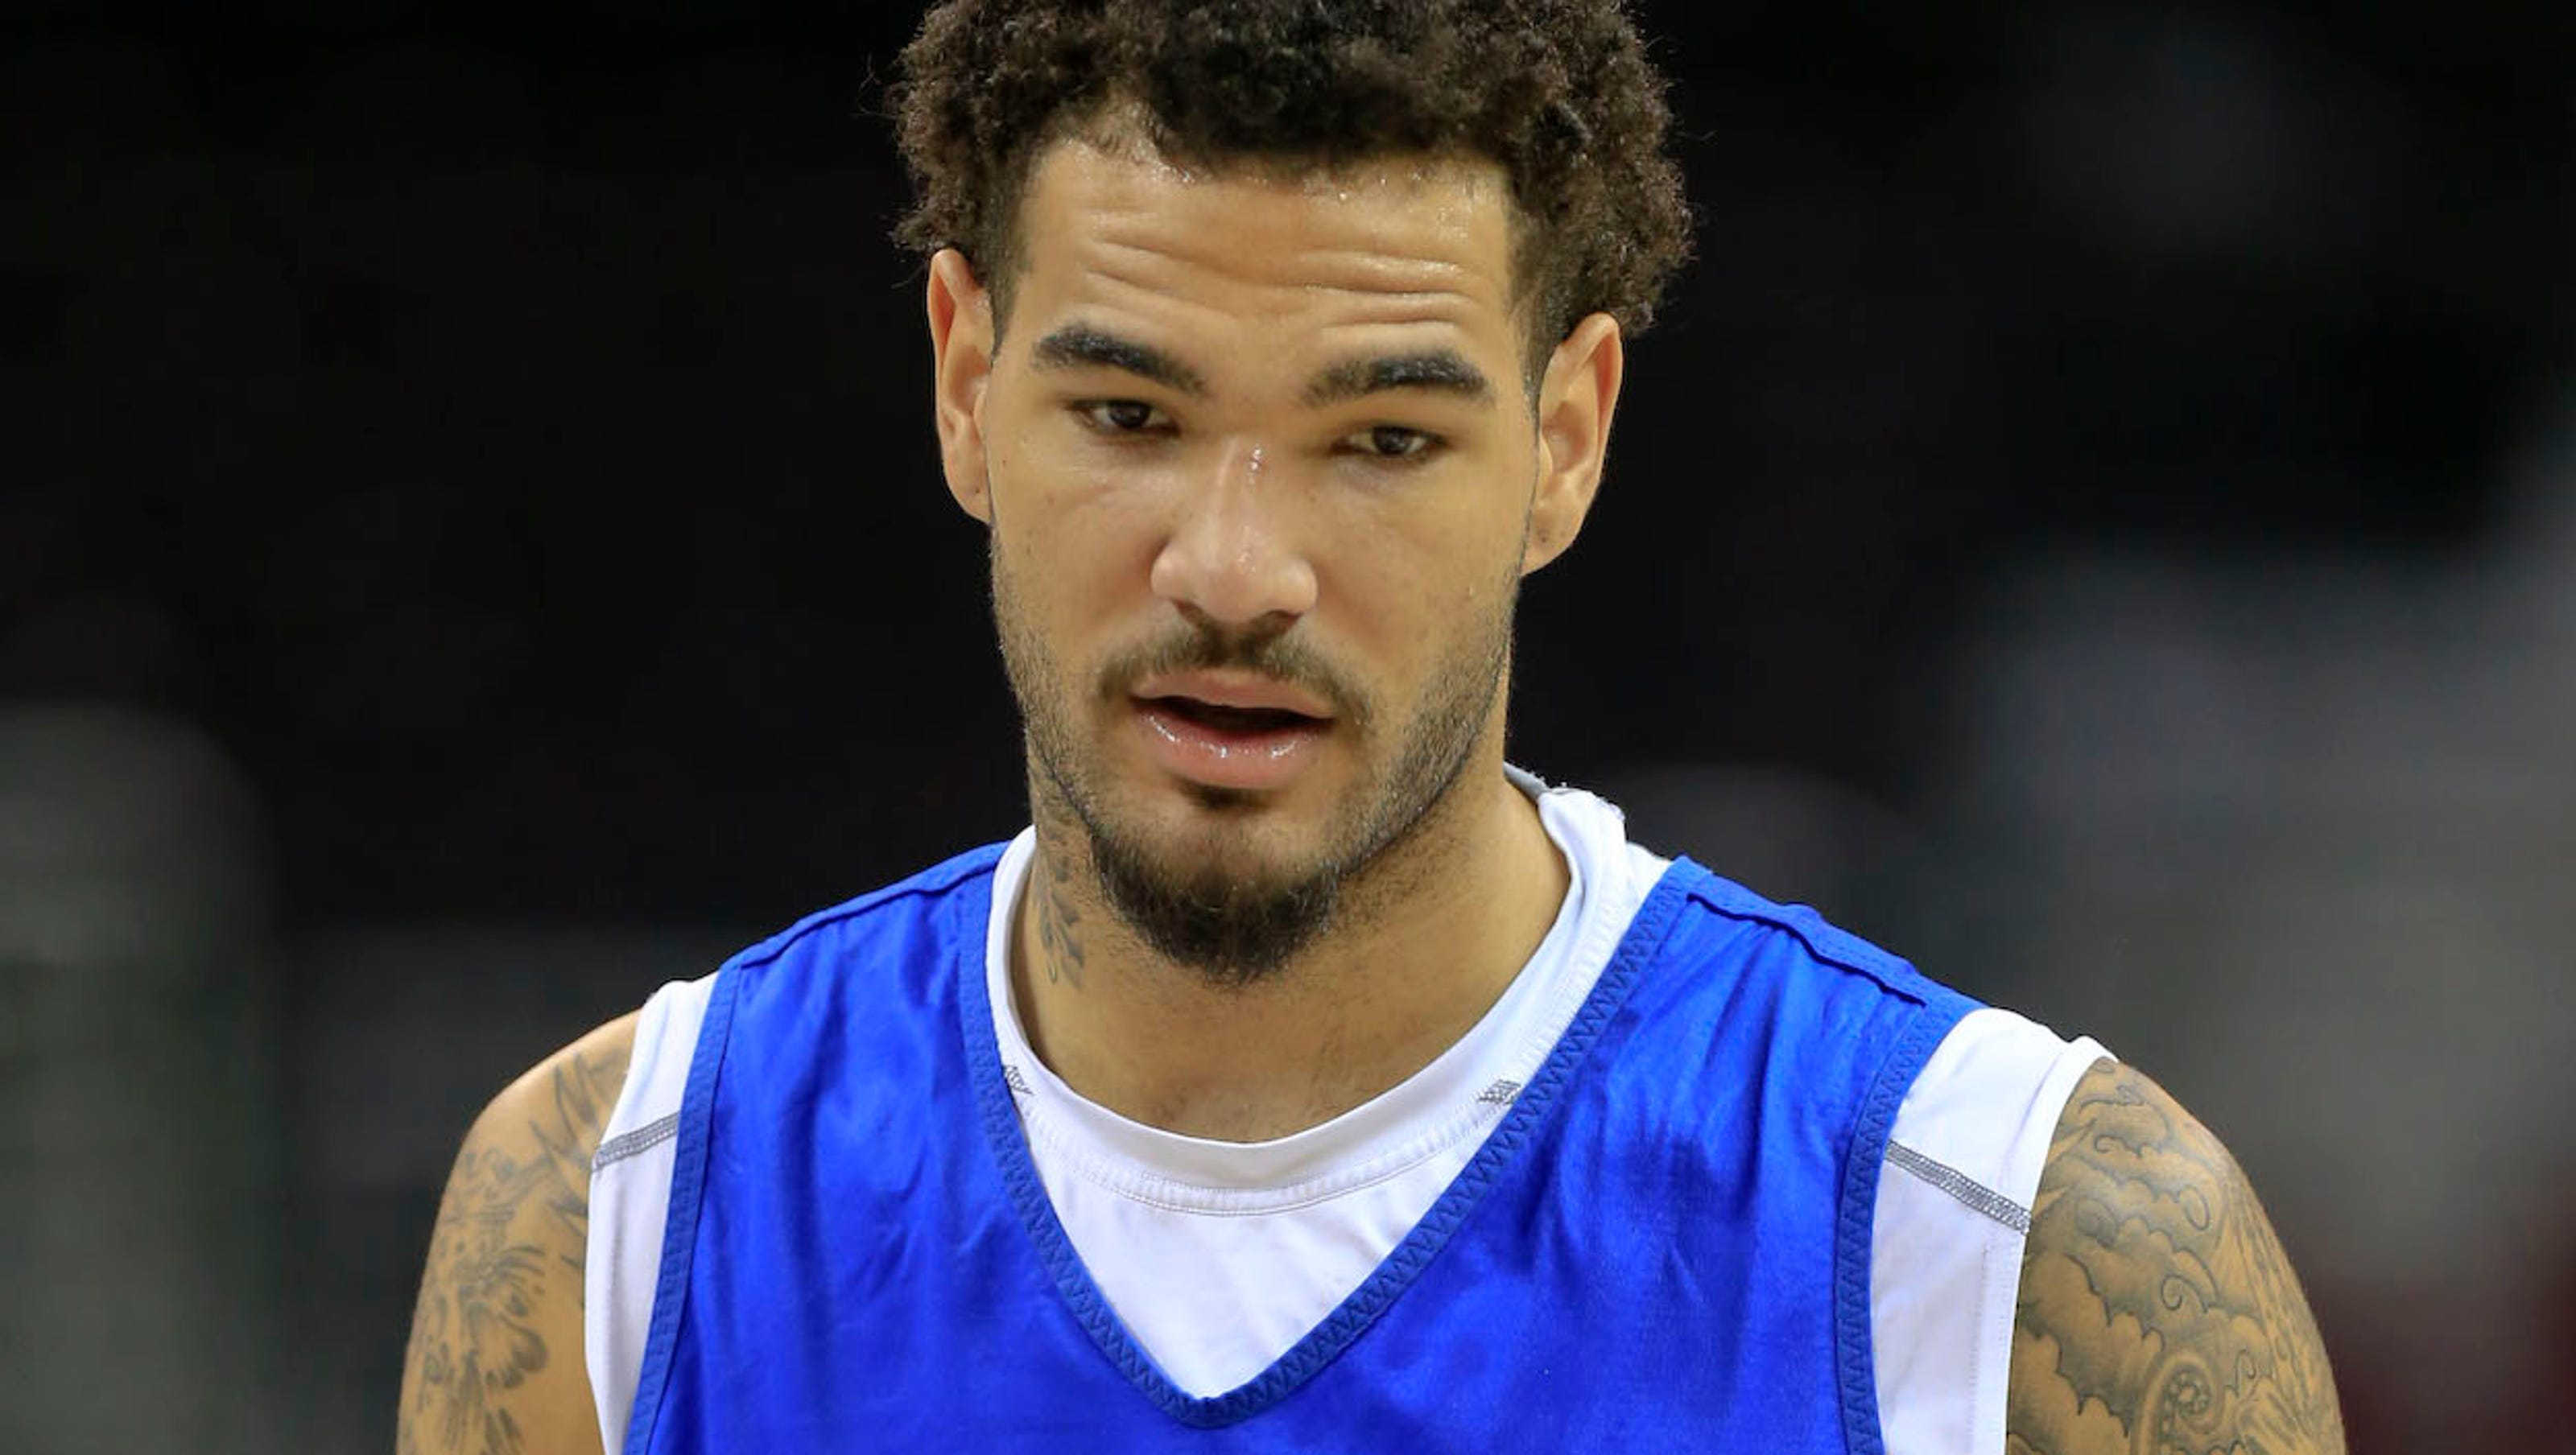 Uk Basketball: Willie Cauley-Stein Loves The Game, Leads Undefeated